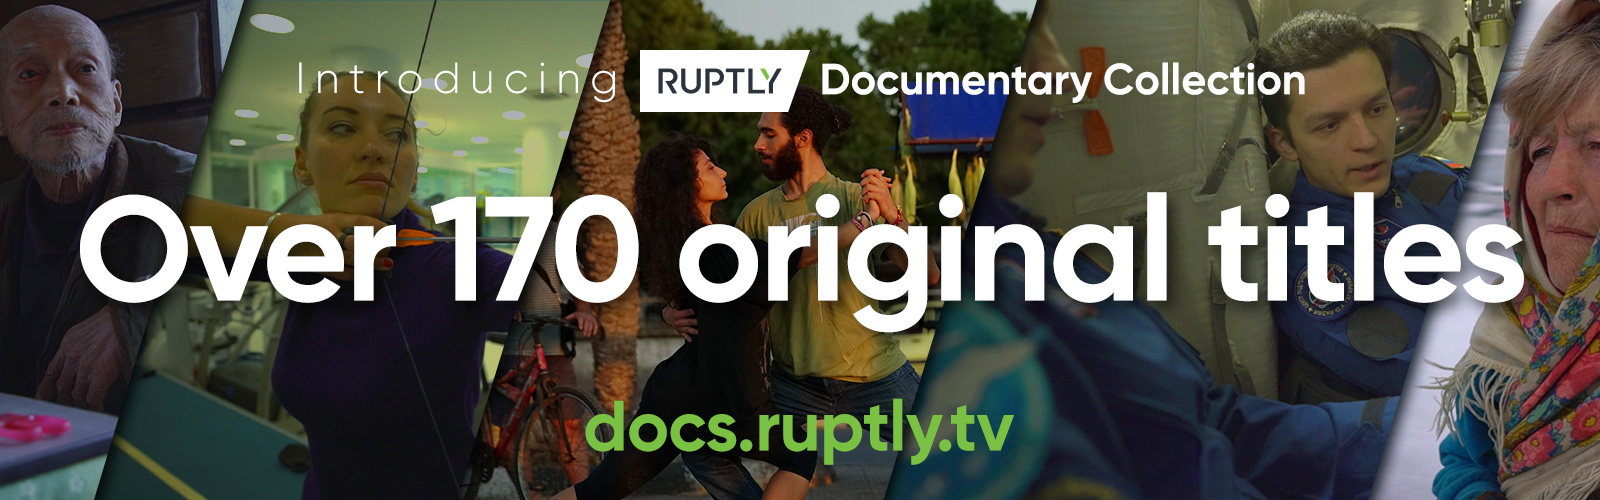 Ruptly - Documentary Collection